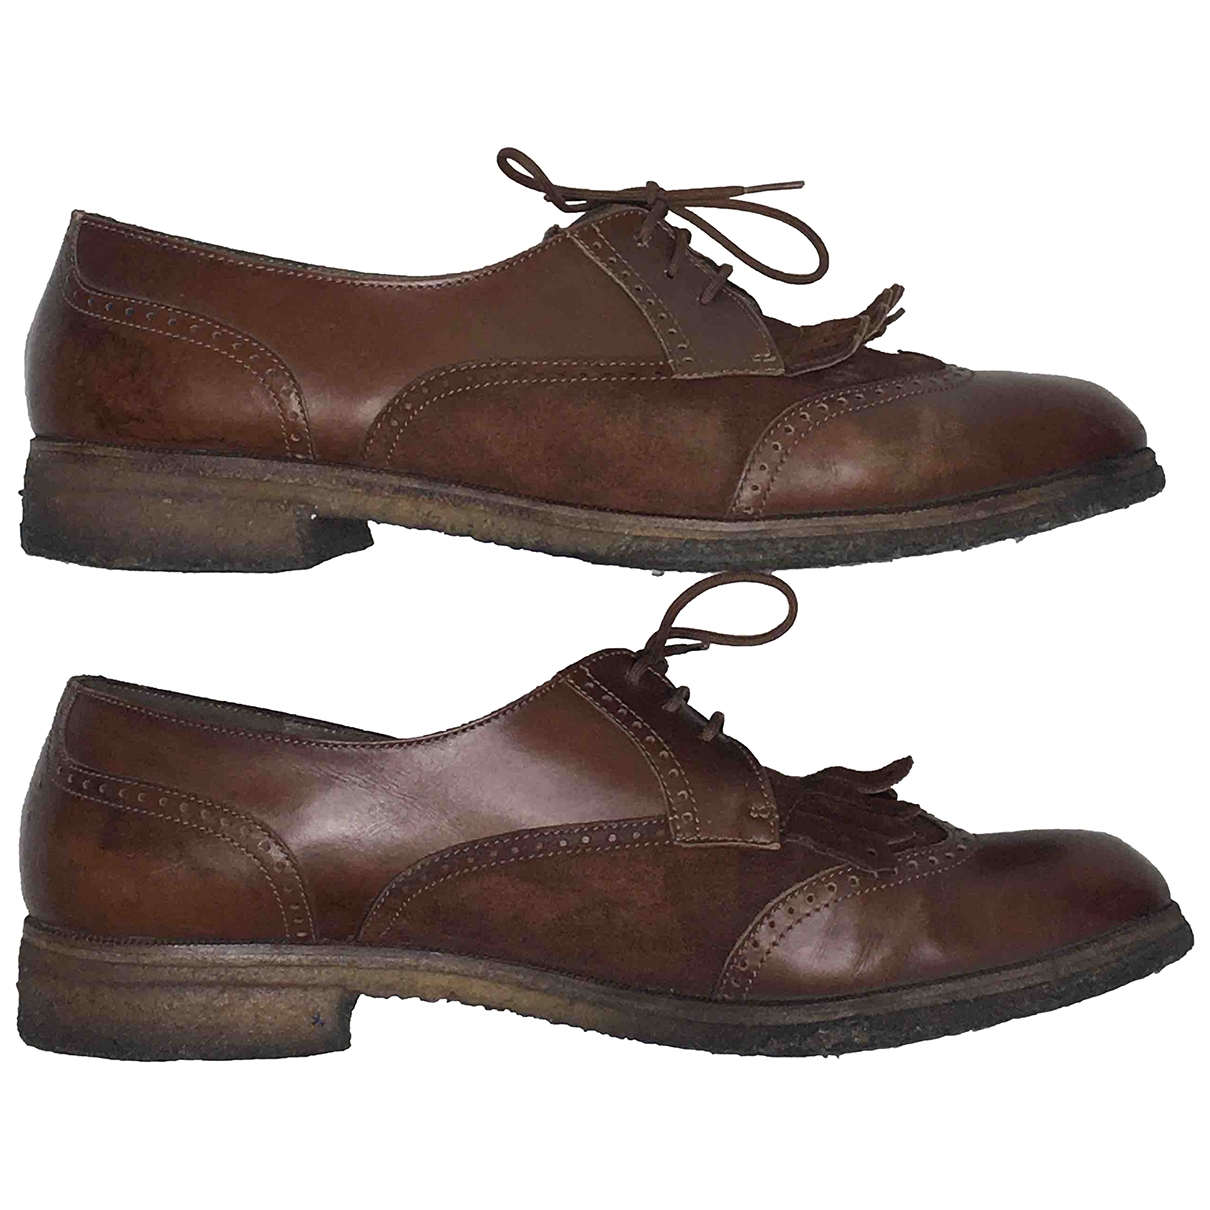 Salvatore Ferragamo \N Brown Leather Lace ups for Women 6.5 US